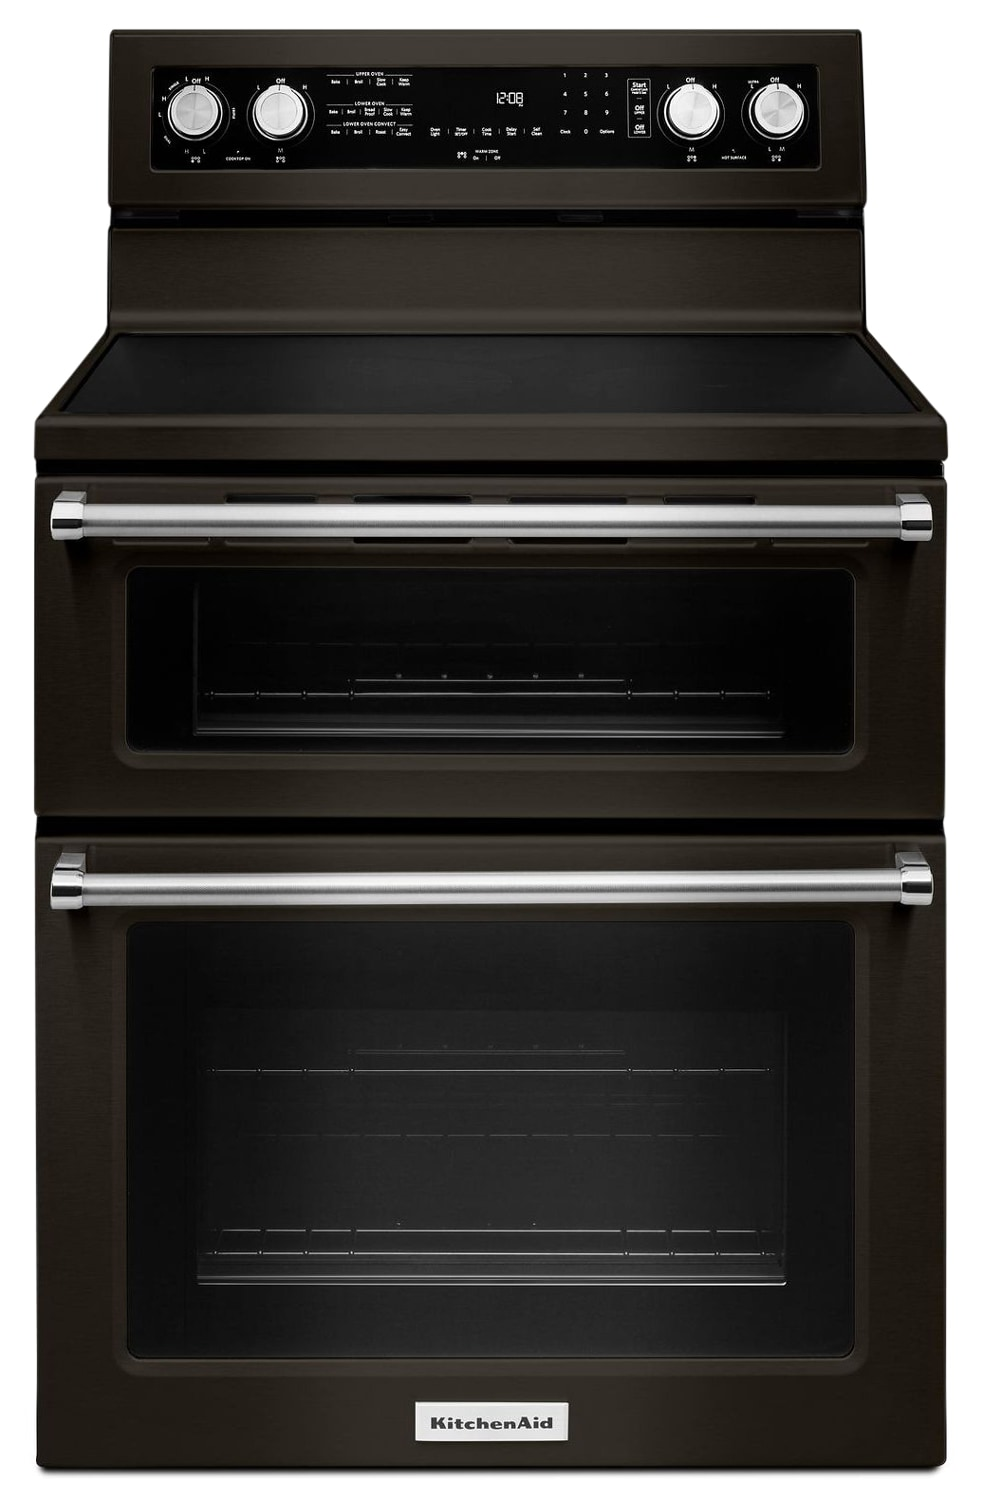 "KitchenAid 30"" Electric Double Oven Convection Range – YKFED500EBS"